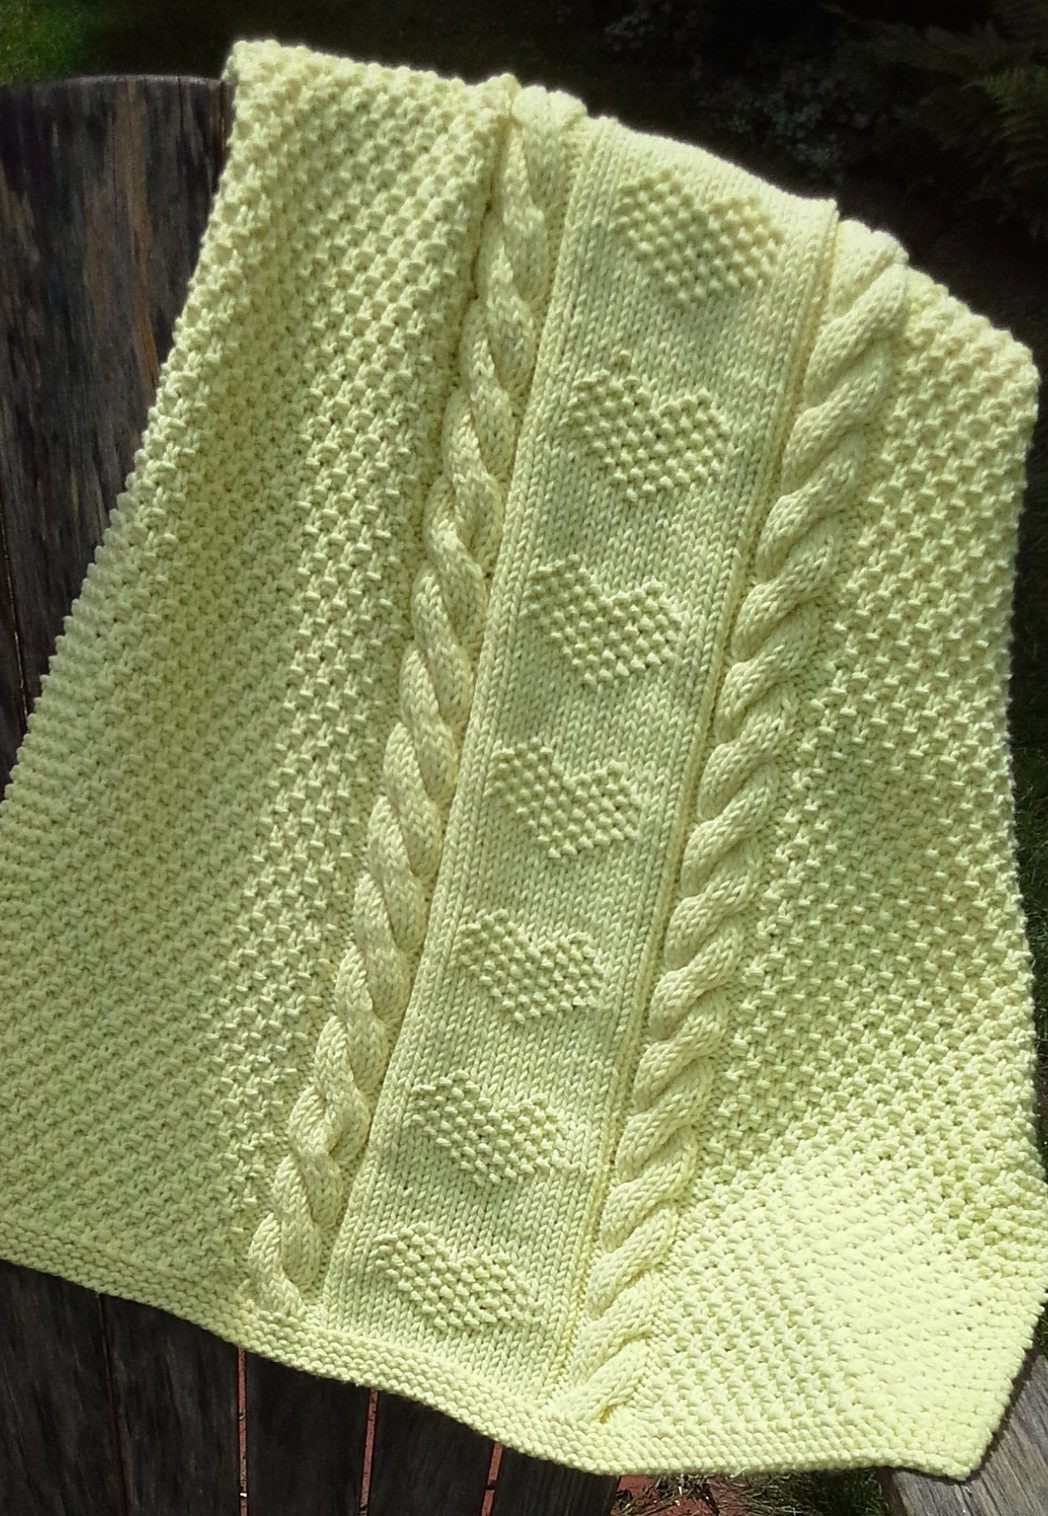 Free Knitted Baby Afghan Patterns Lovely Quick Baby Blanket Knitting Patterns Of Superb 43 Pics Free Knitted Baby Afghan Patterns